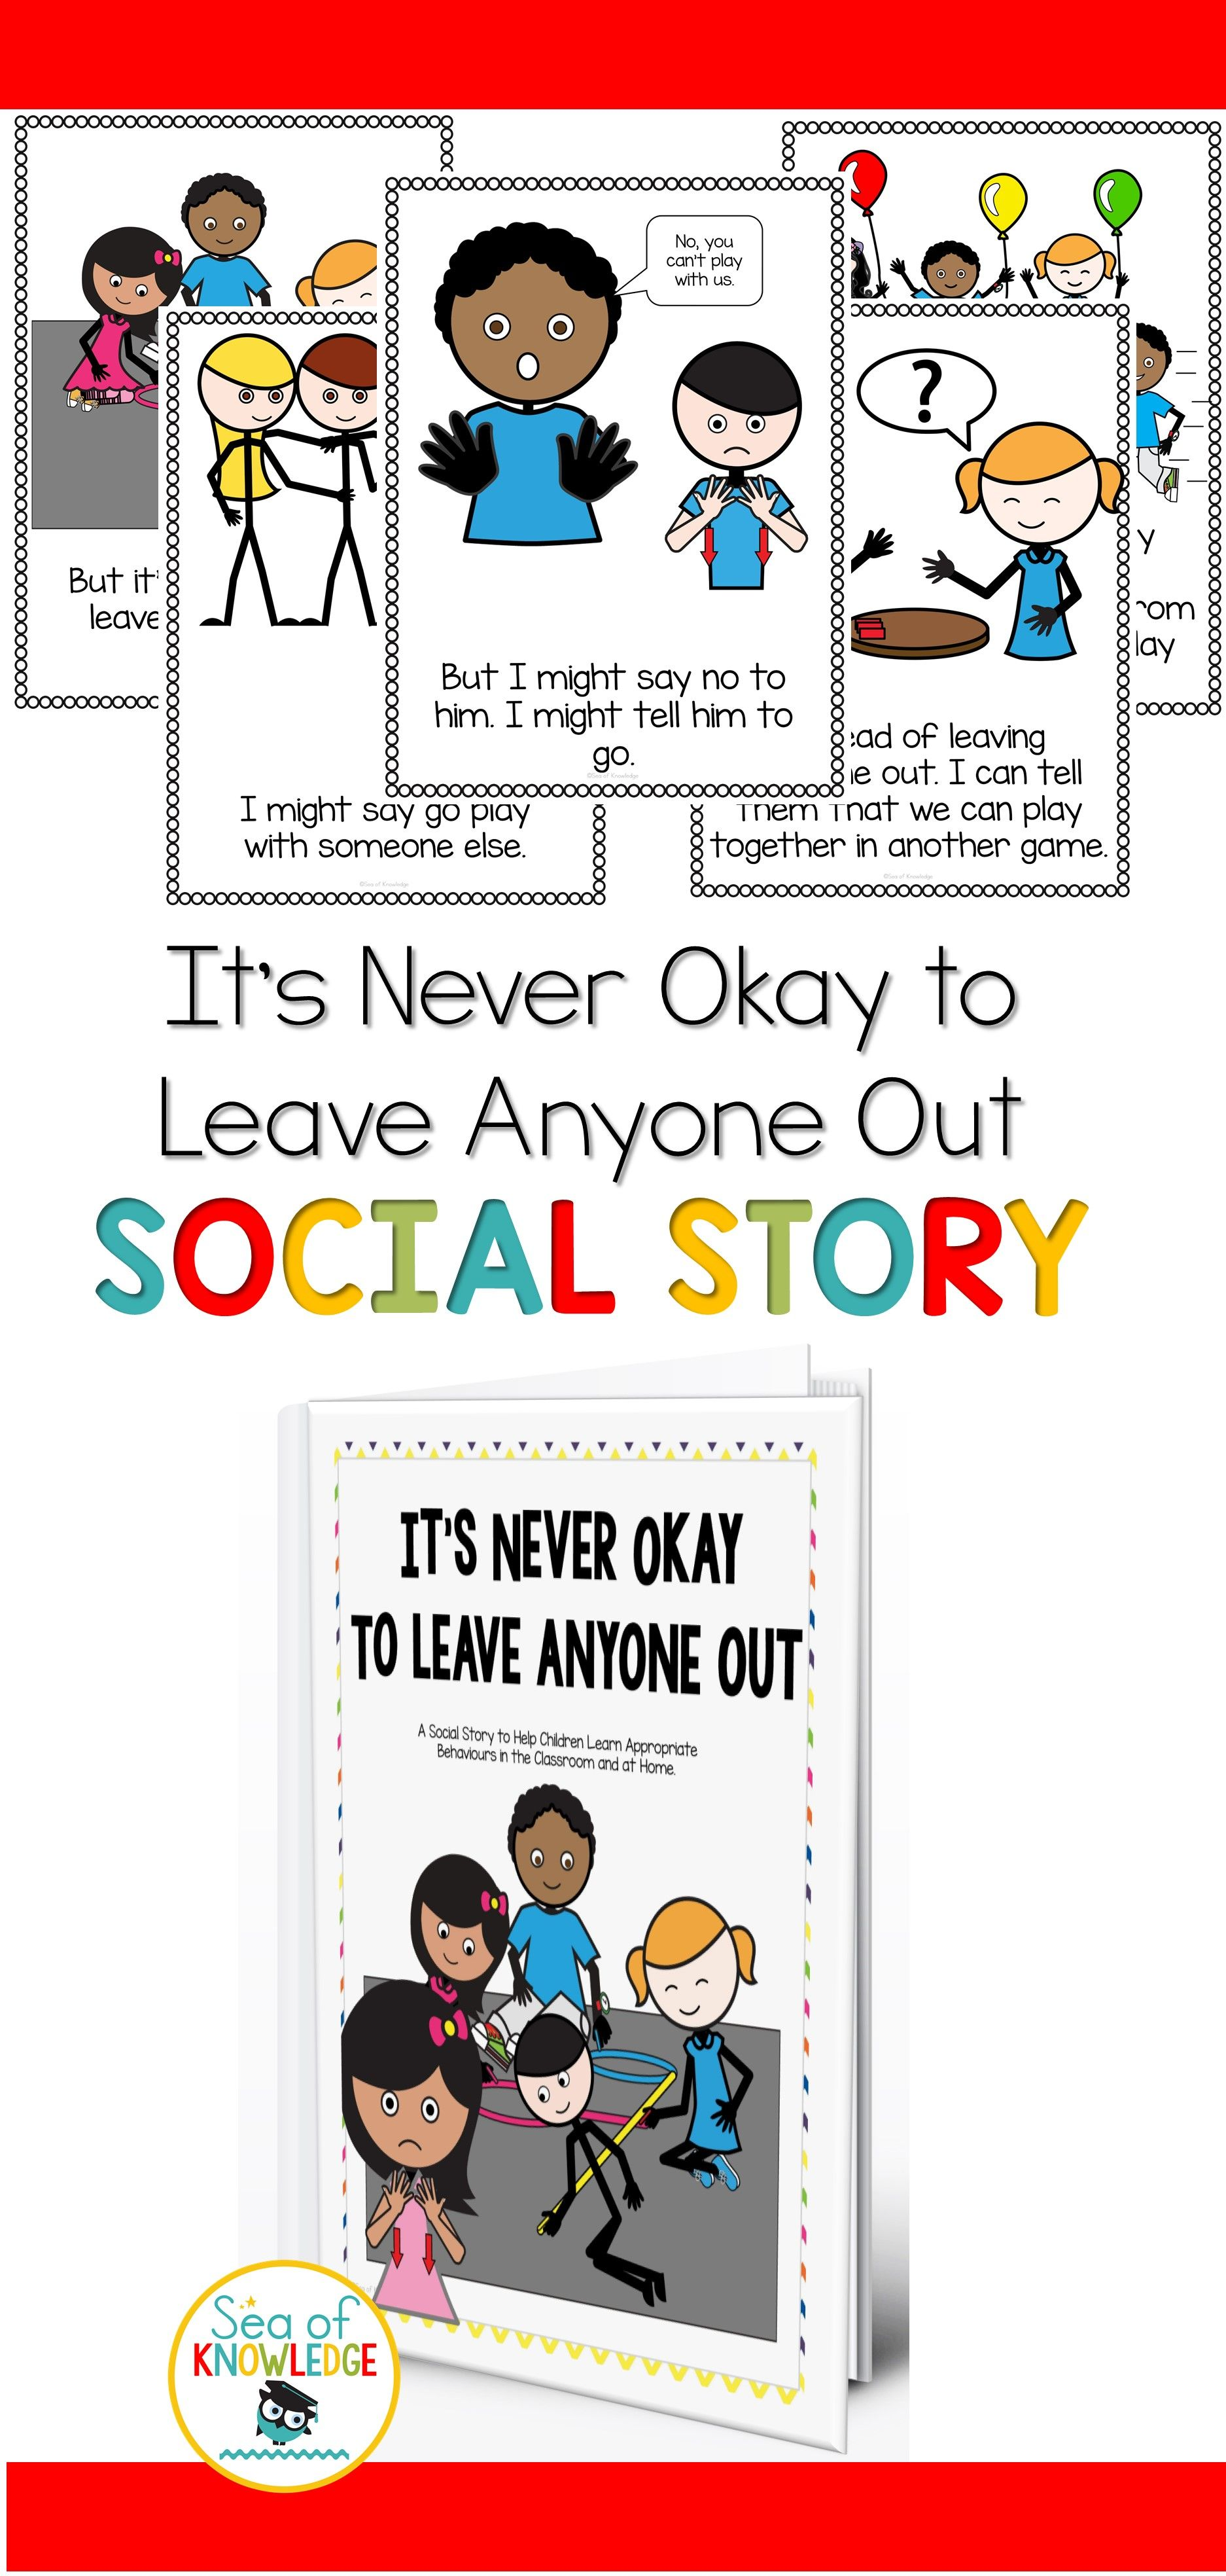 Social Story Joining Play Leaving Anyone Out